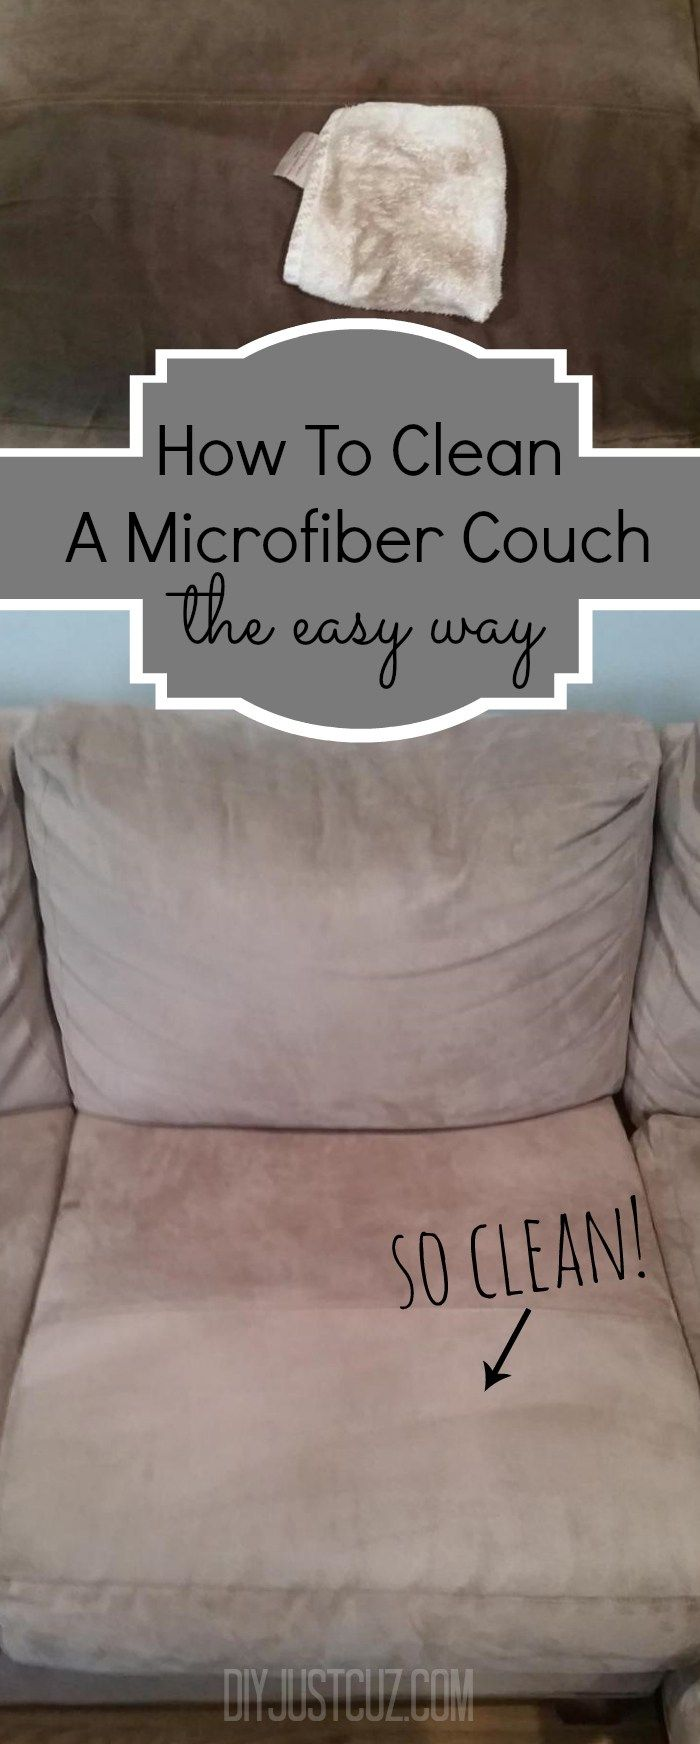 Cleaning A Microfiber Couch | Microfiber couch, Water and Household